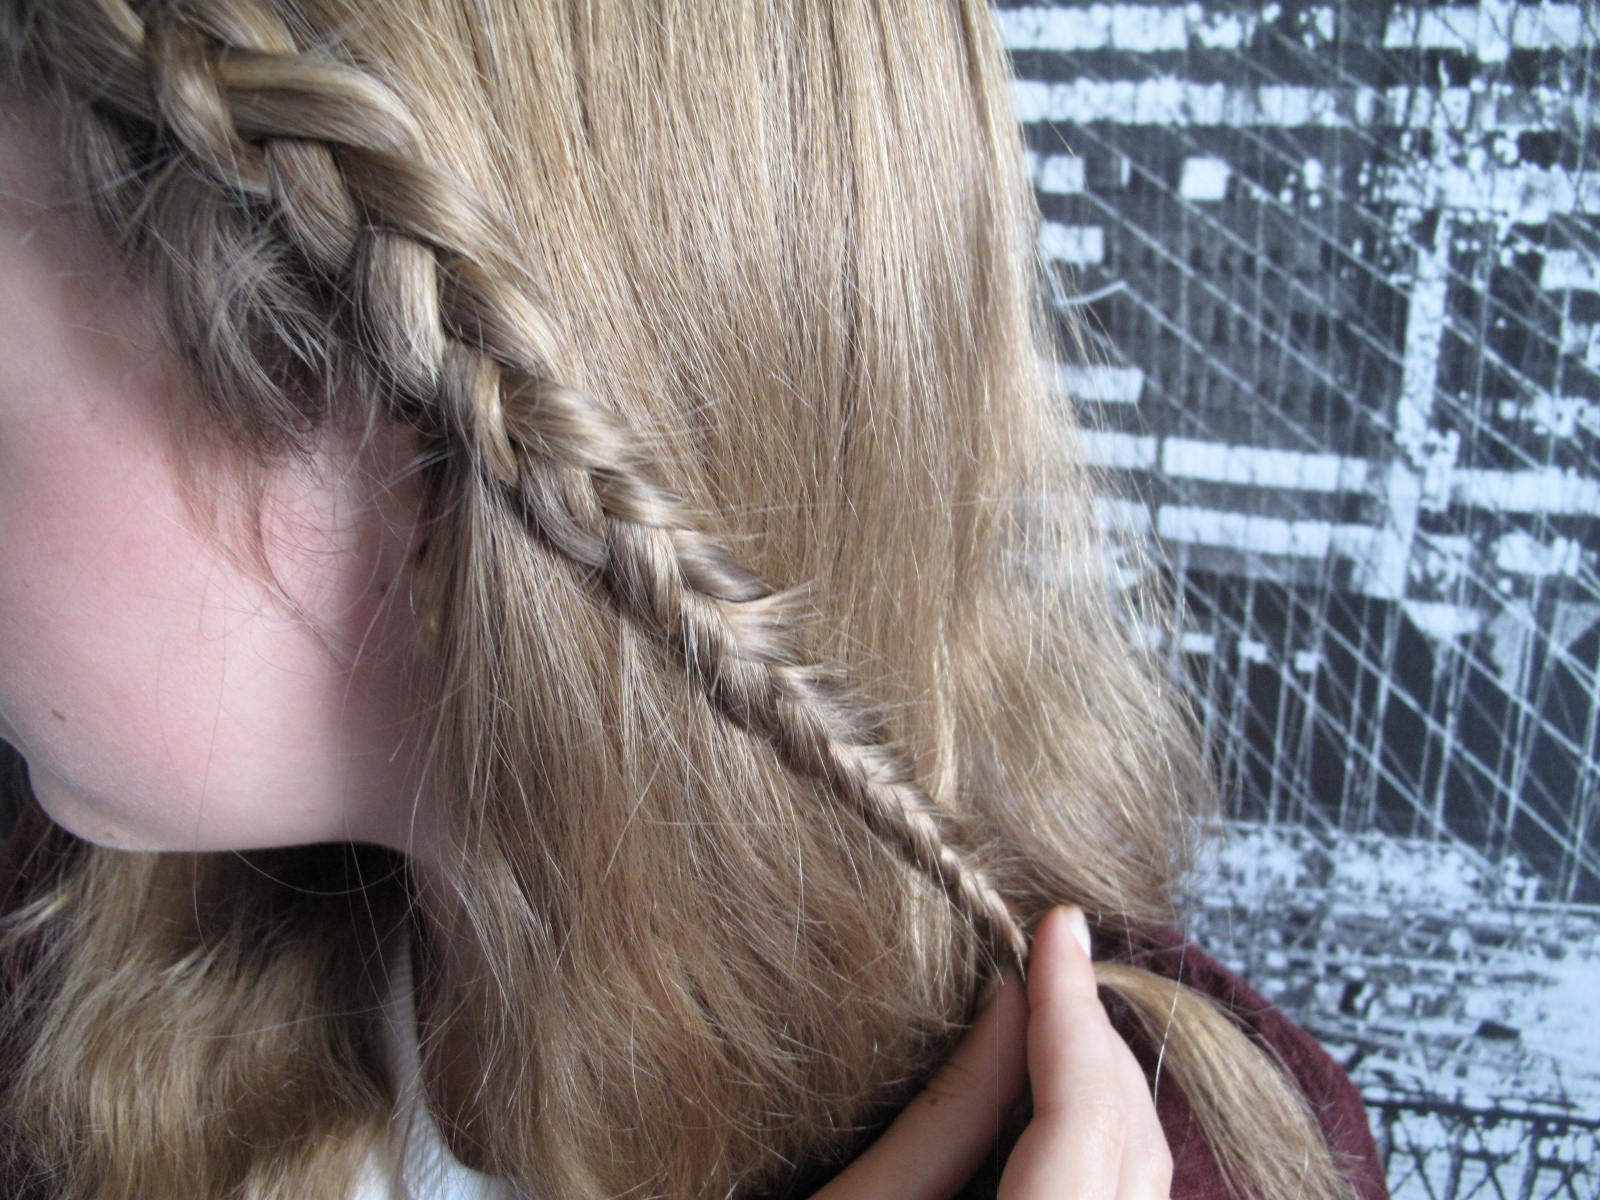 Tuto Coiffure Facile Queue De Cheval Romane And Margaux Lifestyle Blog Tuto Coiffure Une